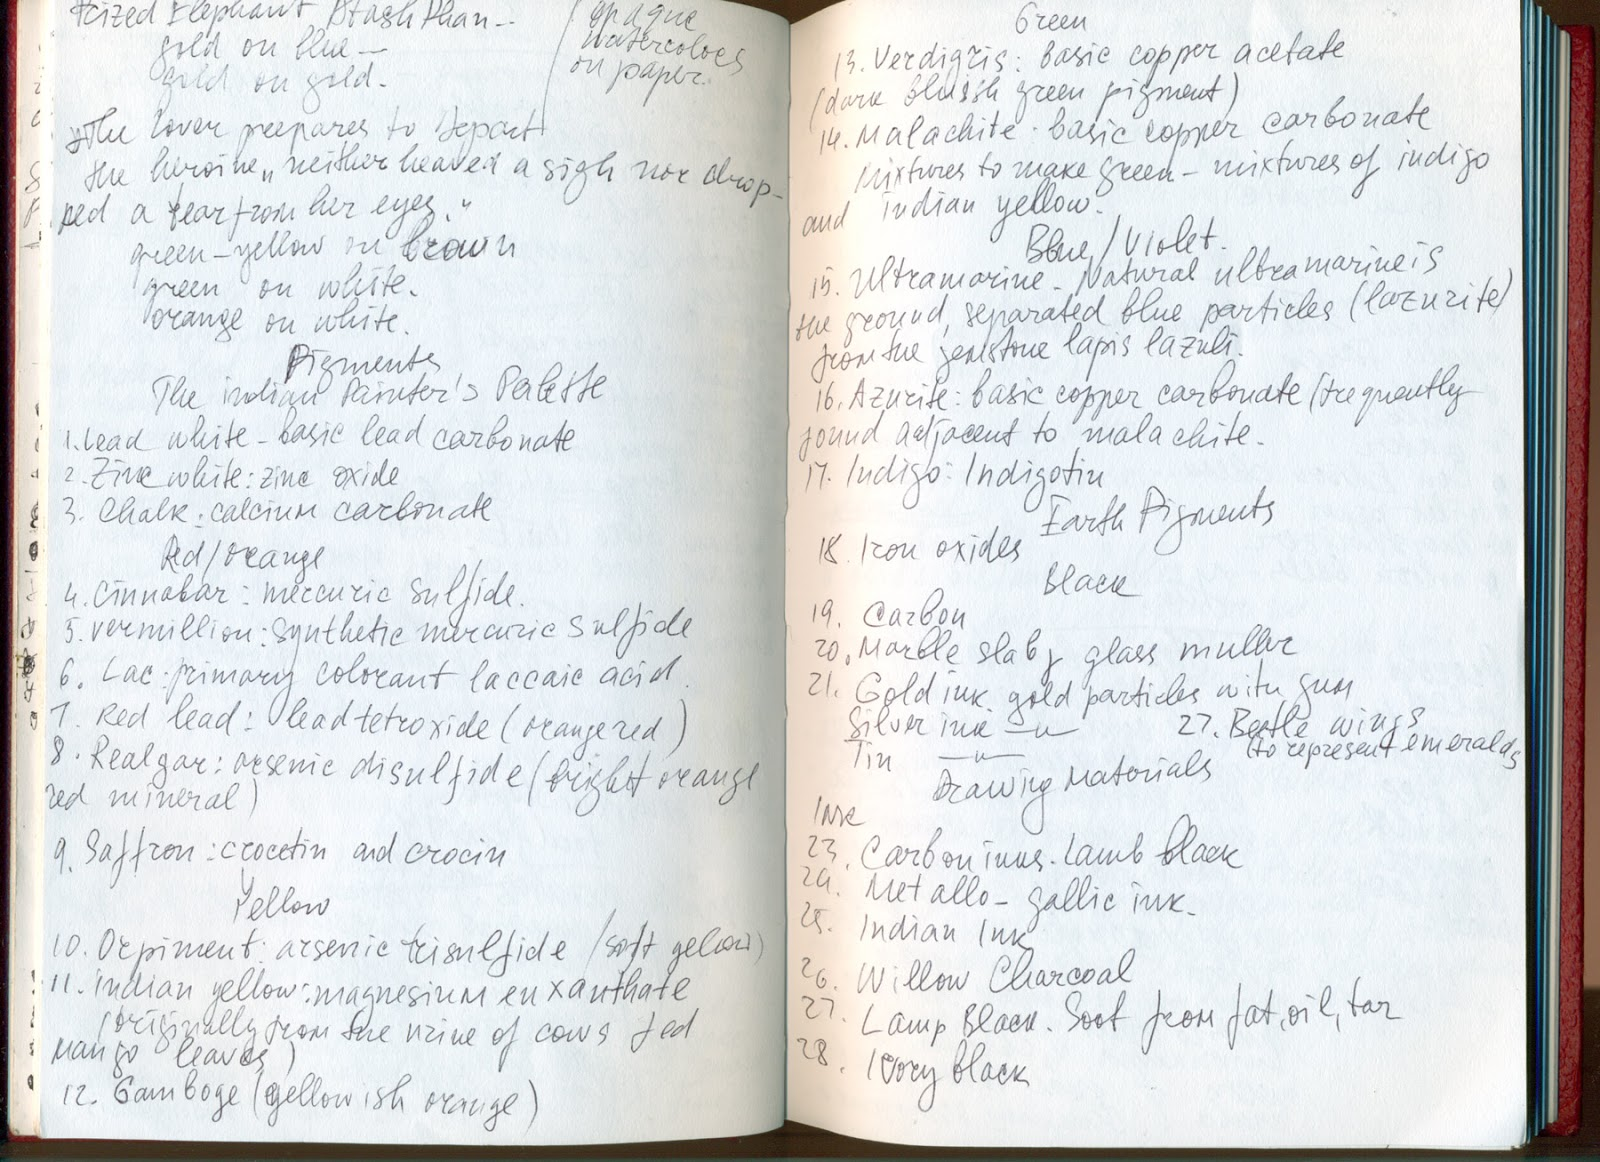 Mirena Rhee - Artist sketchbook. My Red Diary - a list of pigments.